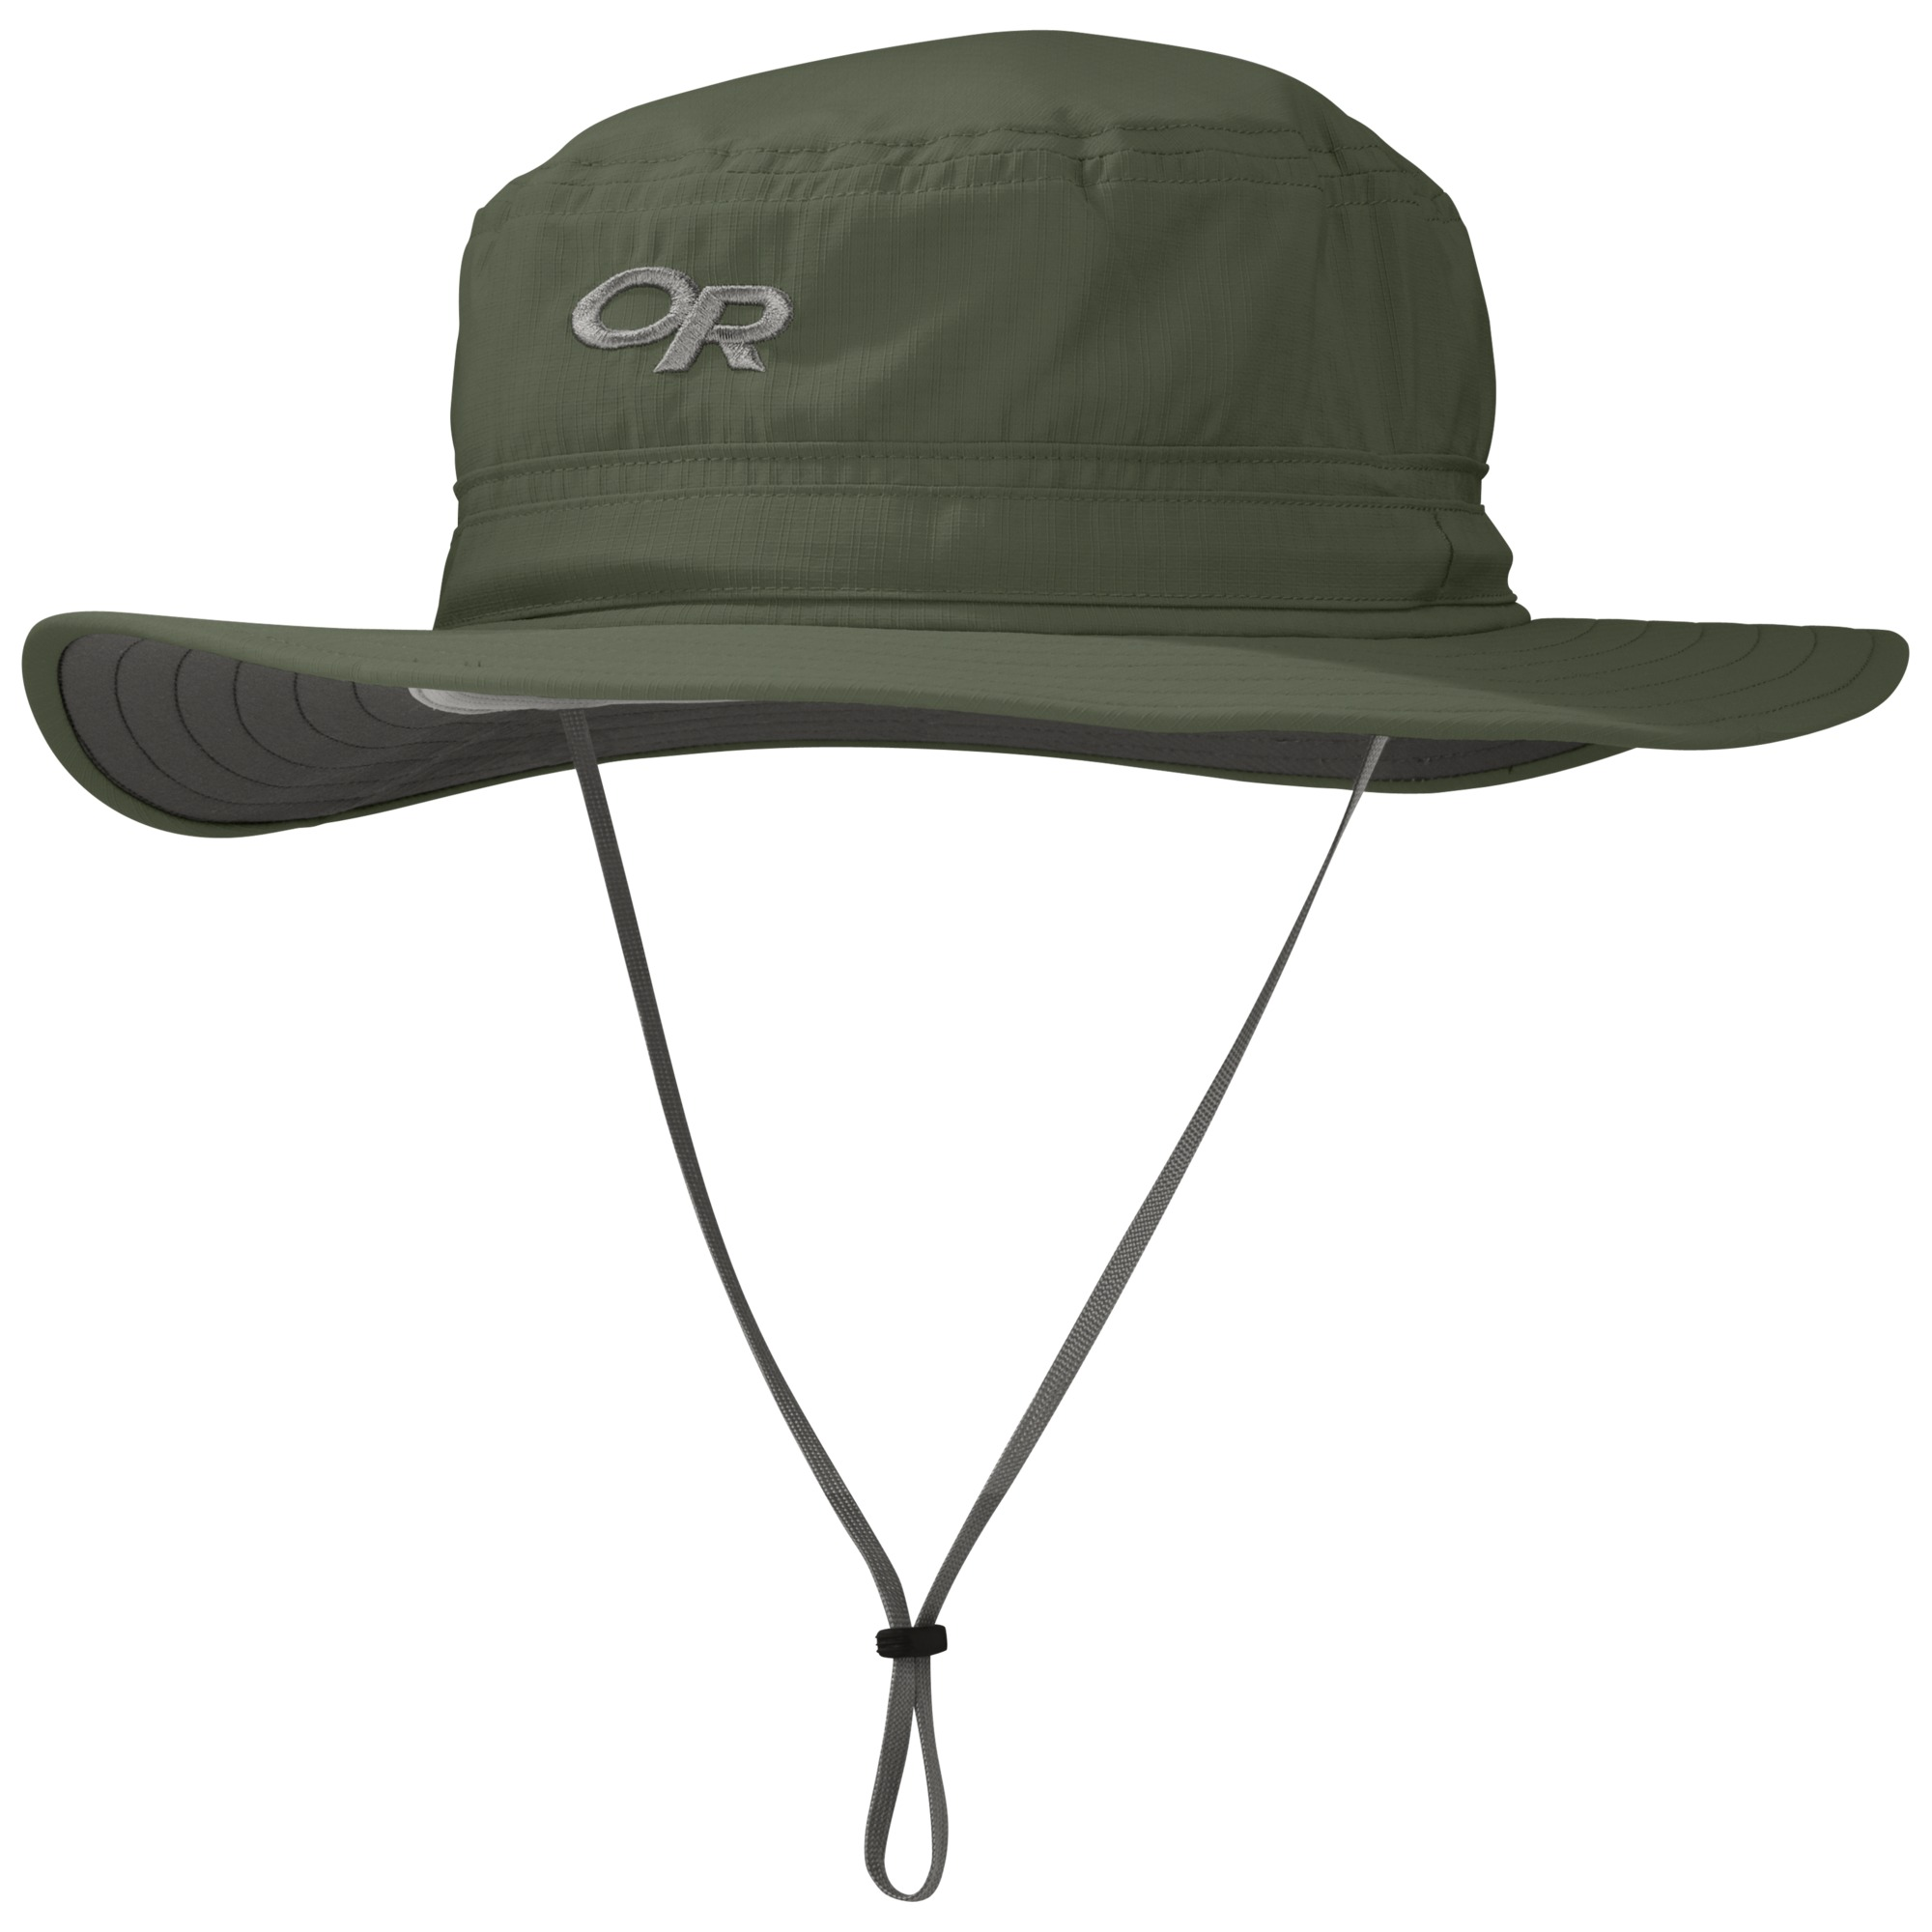 eba111d35cd74 Helios Sun Hat - fatigue | Outdoor Research